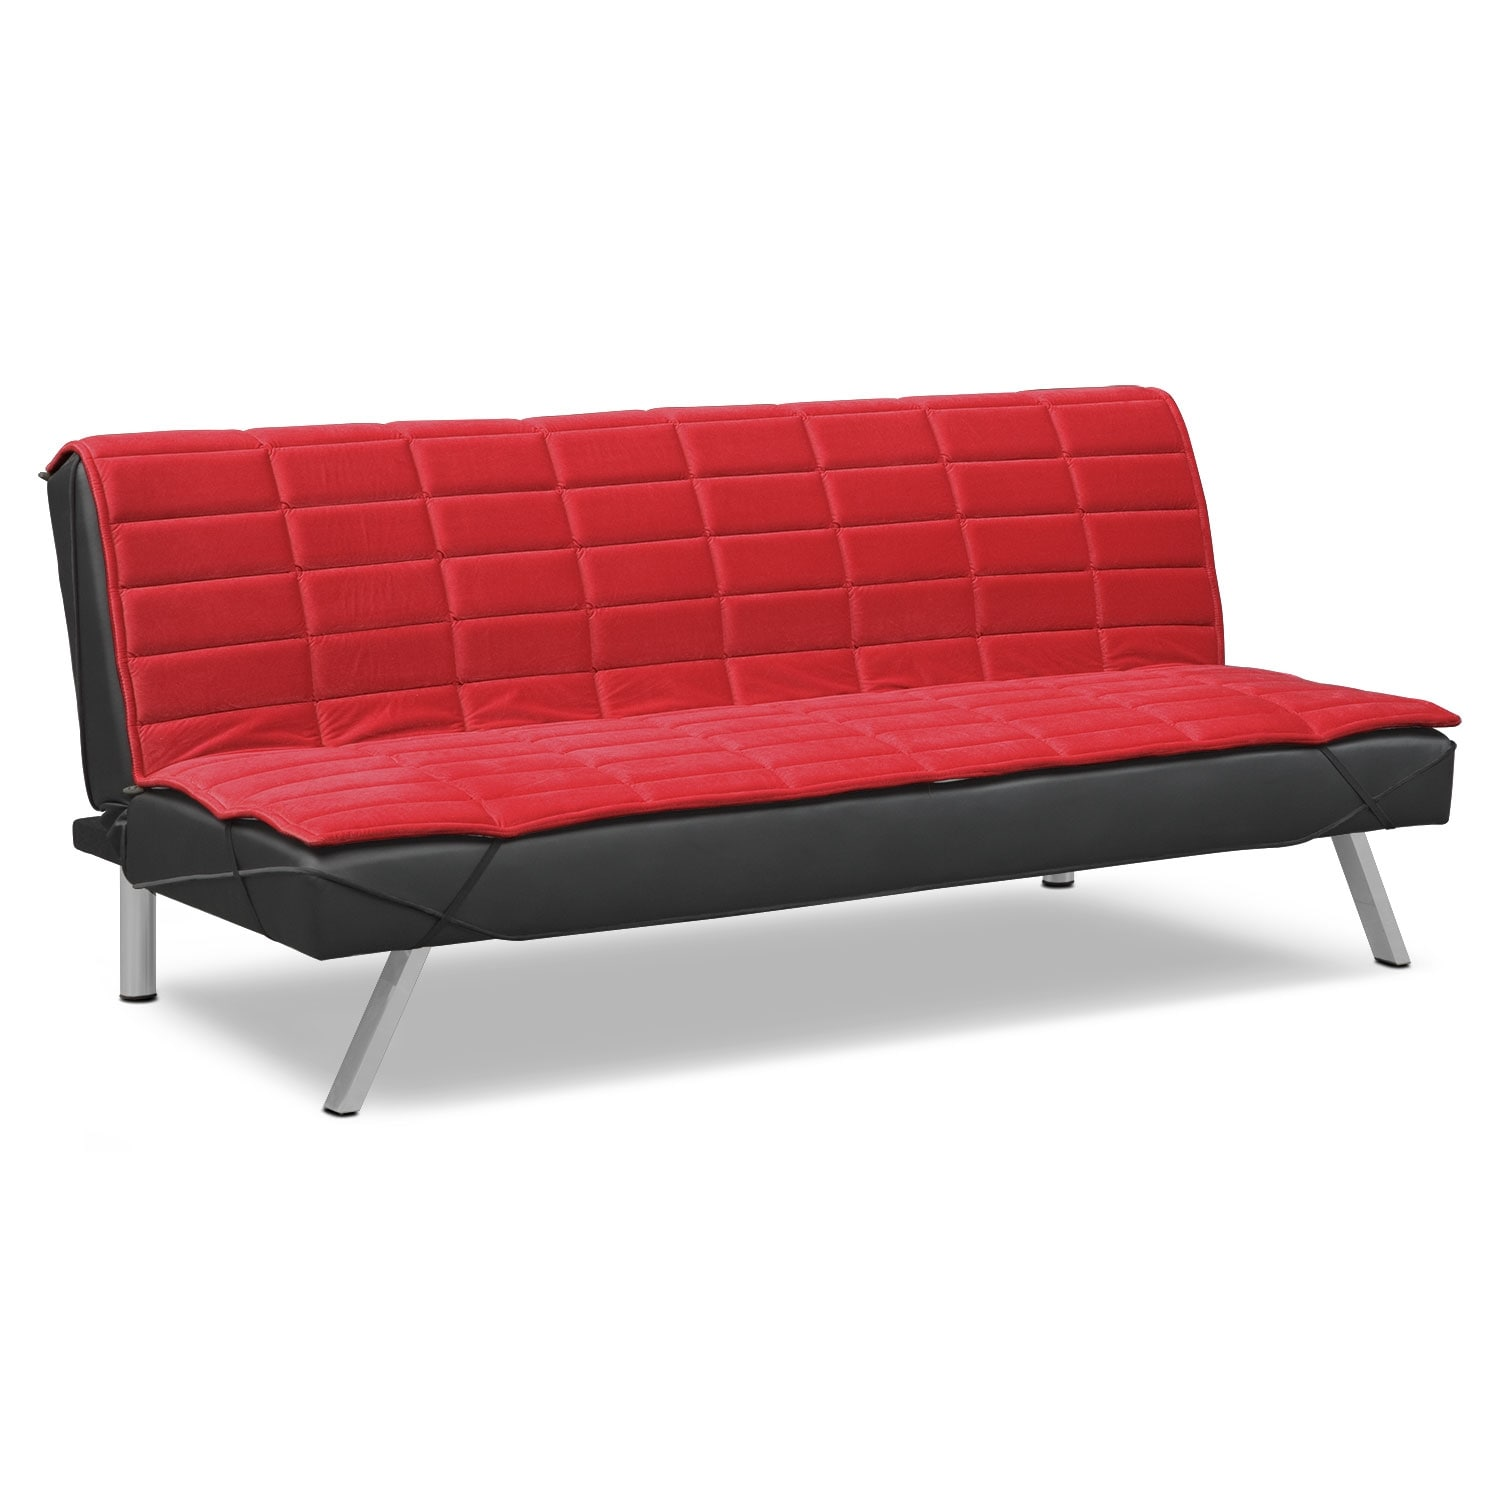 Lotus Futon Sofa Bed - Black/Red